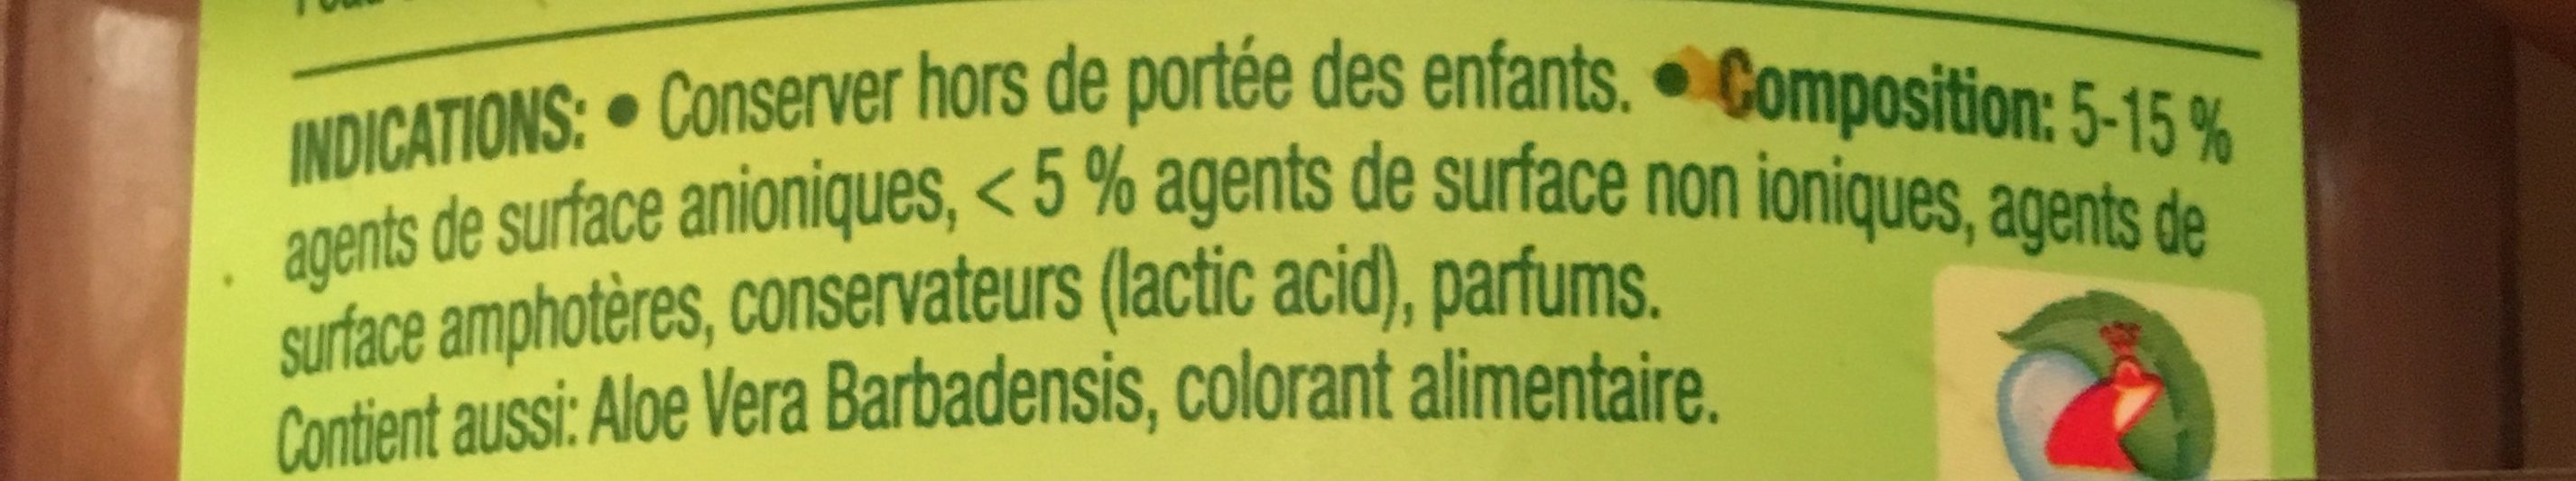 Ecologique - Ingredients - fr